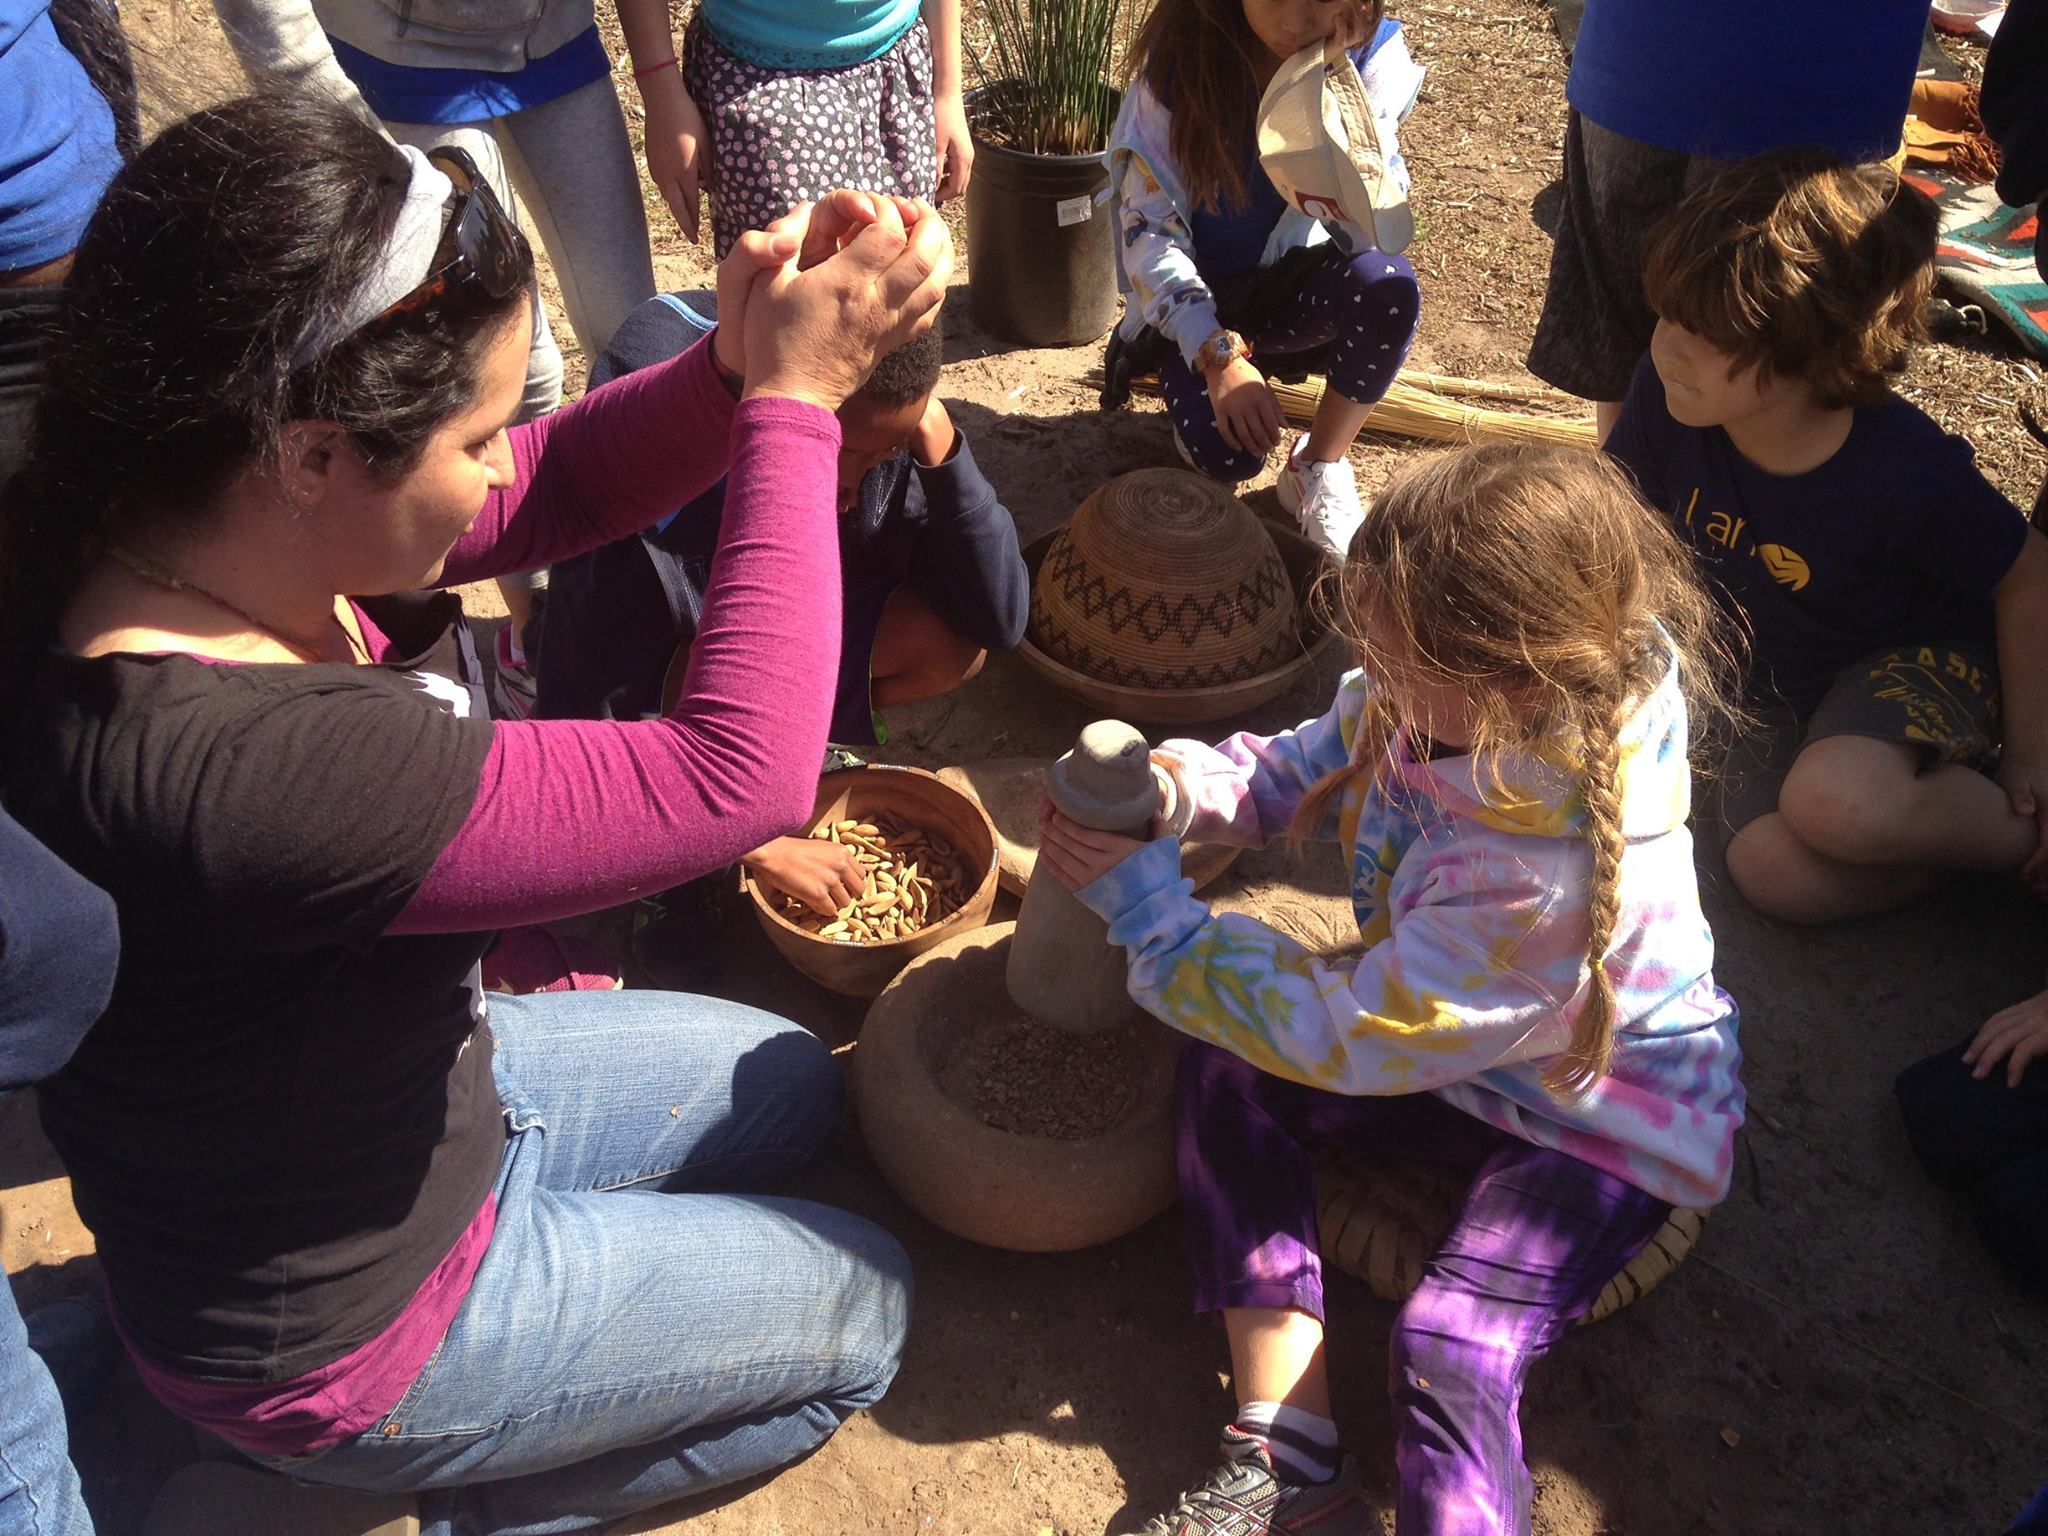 Children excitedly wait their turn to try their hand at crushing acorns to make acorn flour.